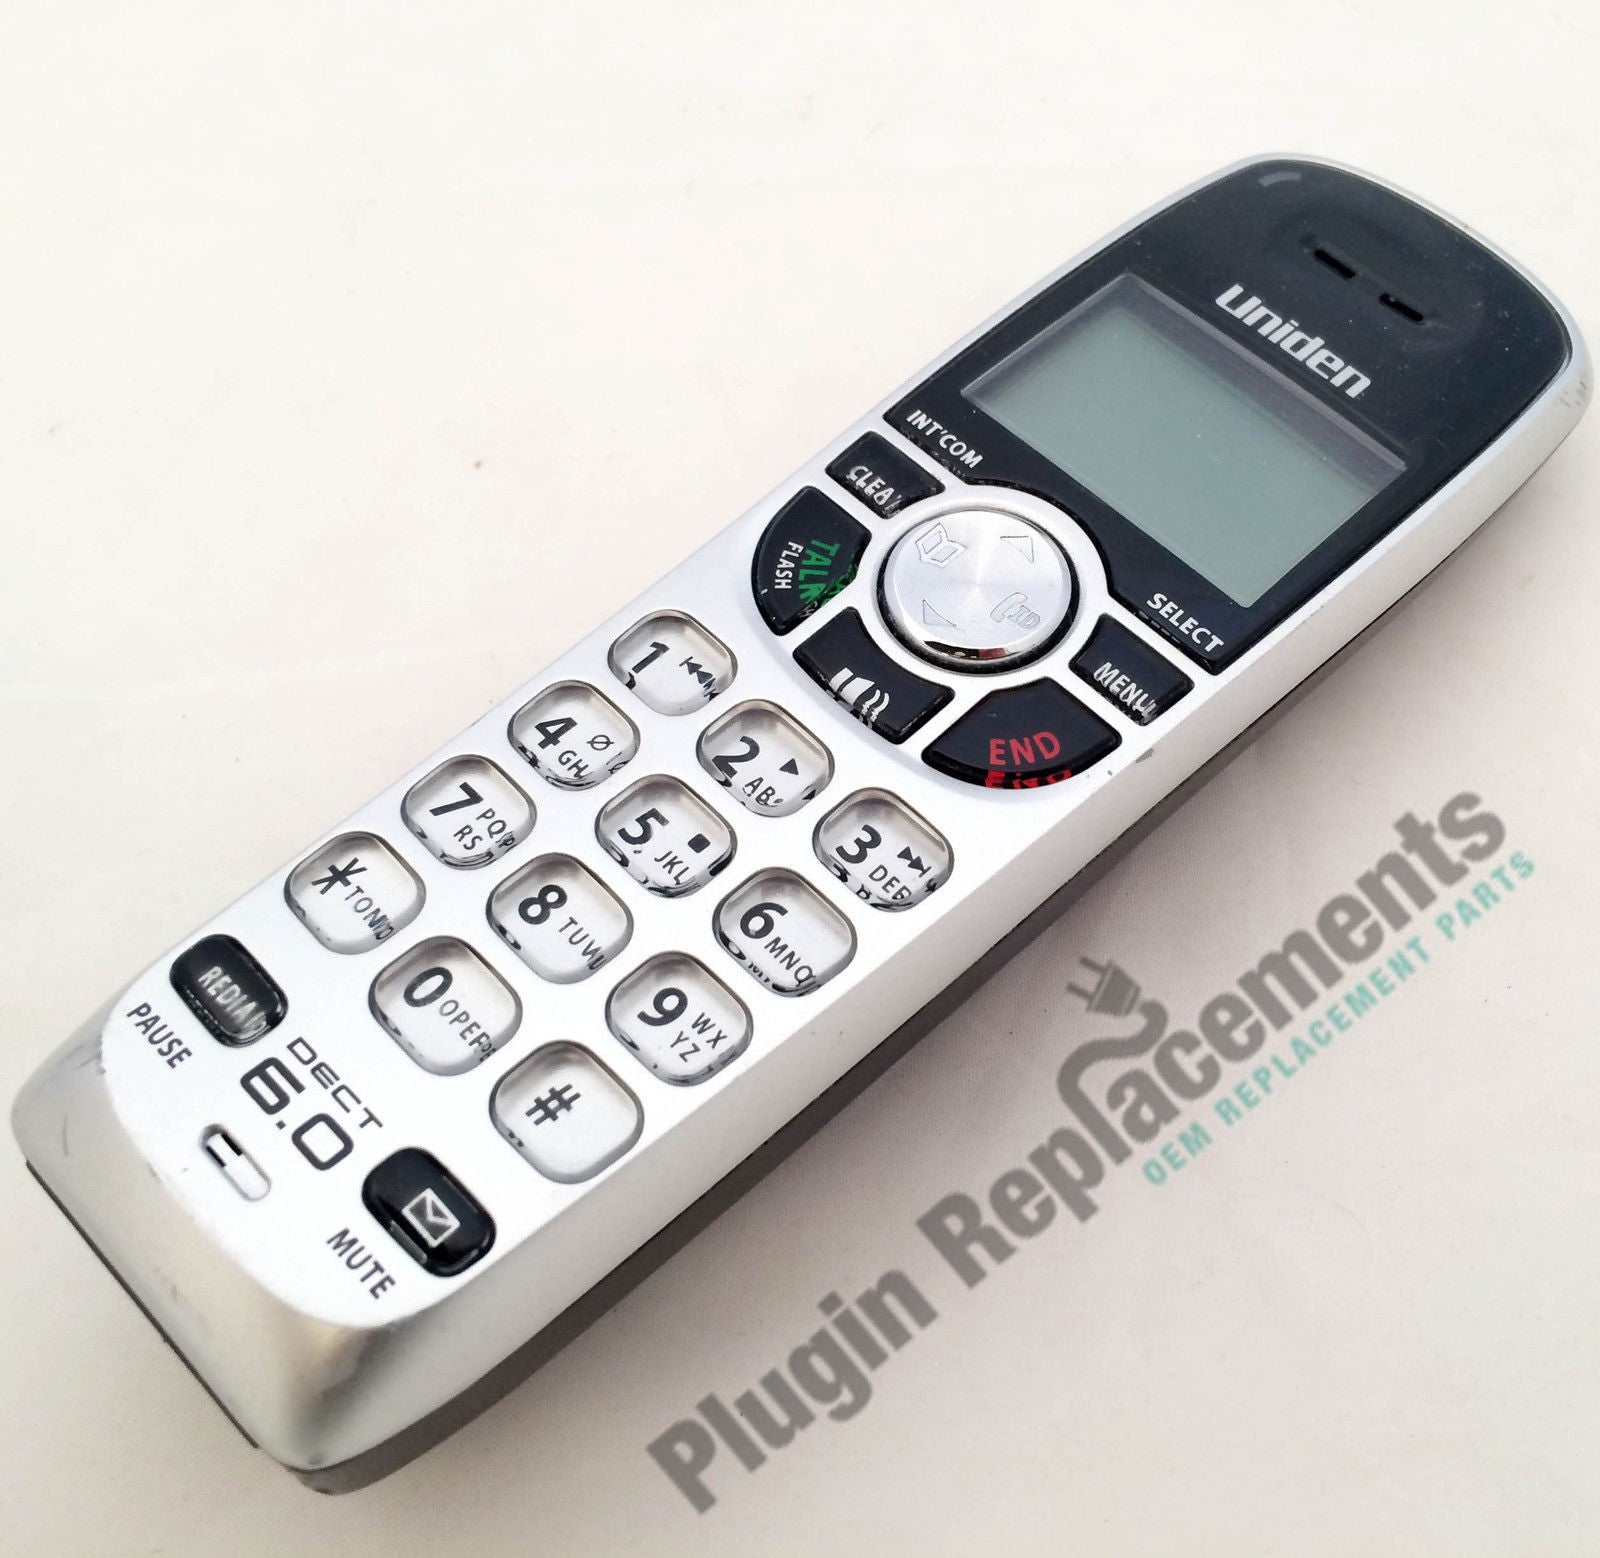 Uniden DECT1580-2 DCX150 Extra Handset Only for DECT1560 1580 Series